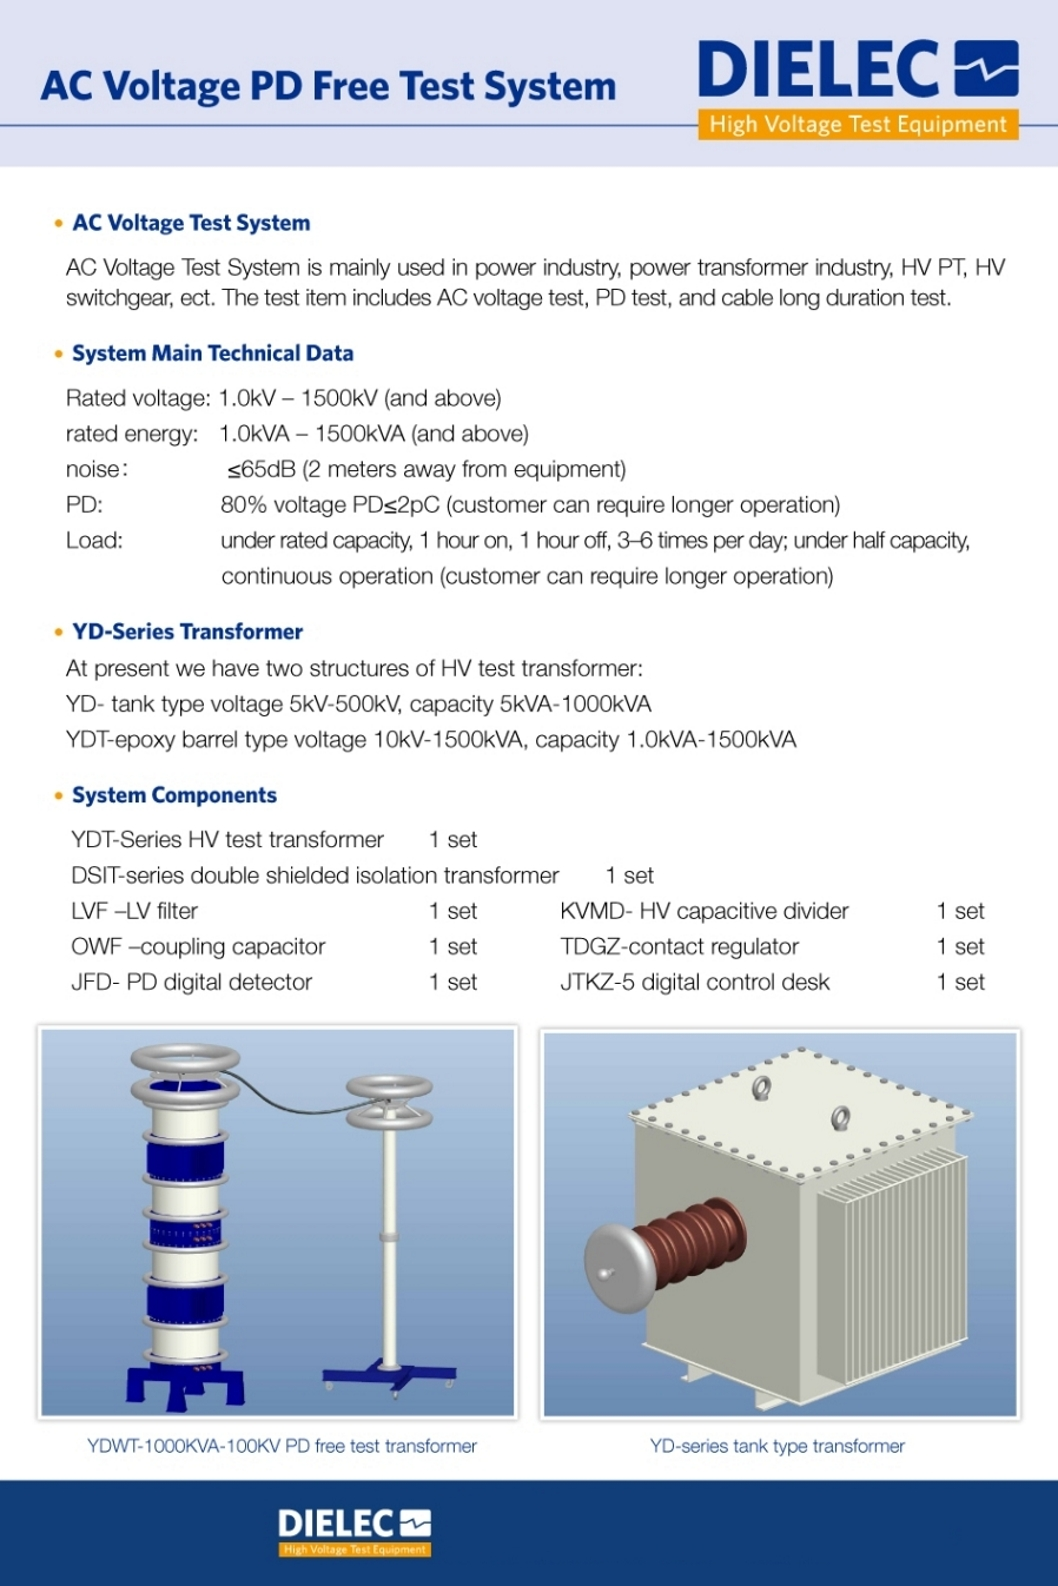 Dielec - Brochure - AC Voltage PD Free Test System